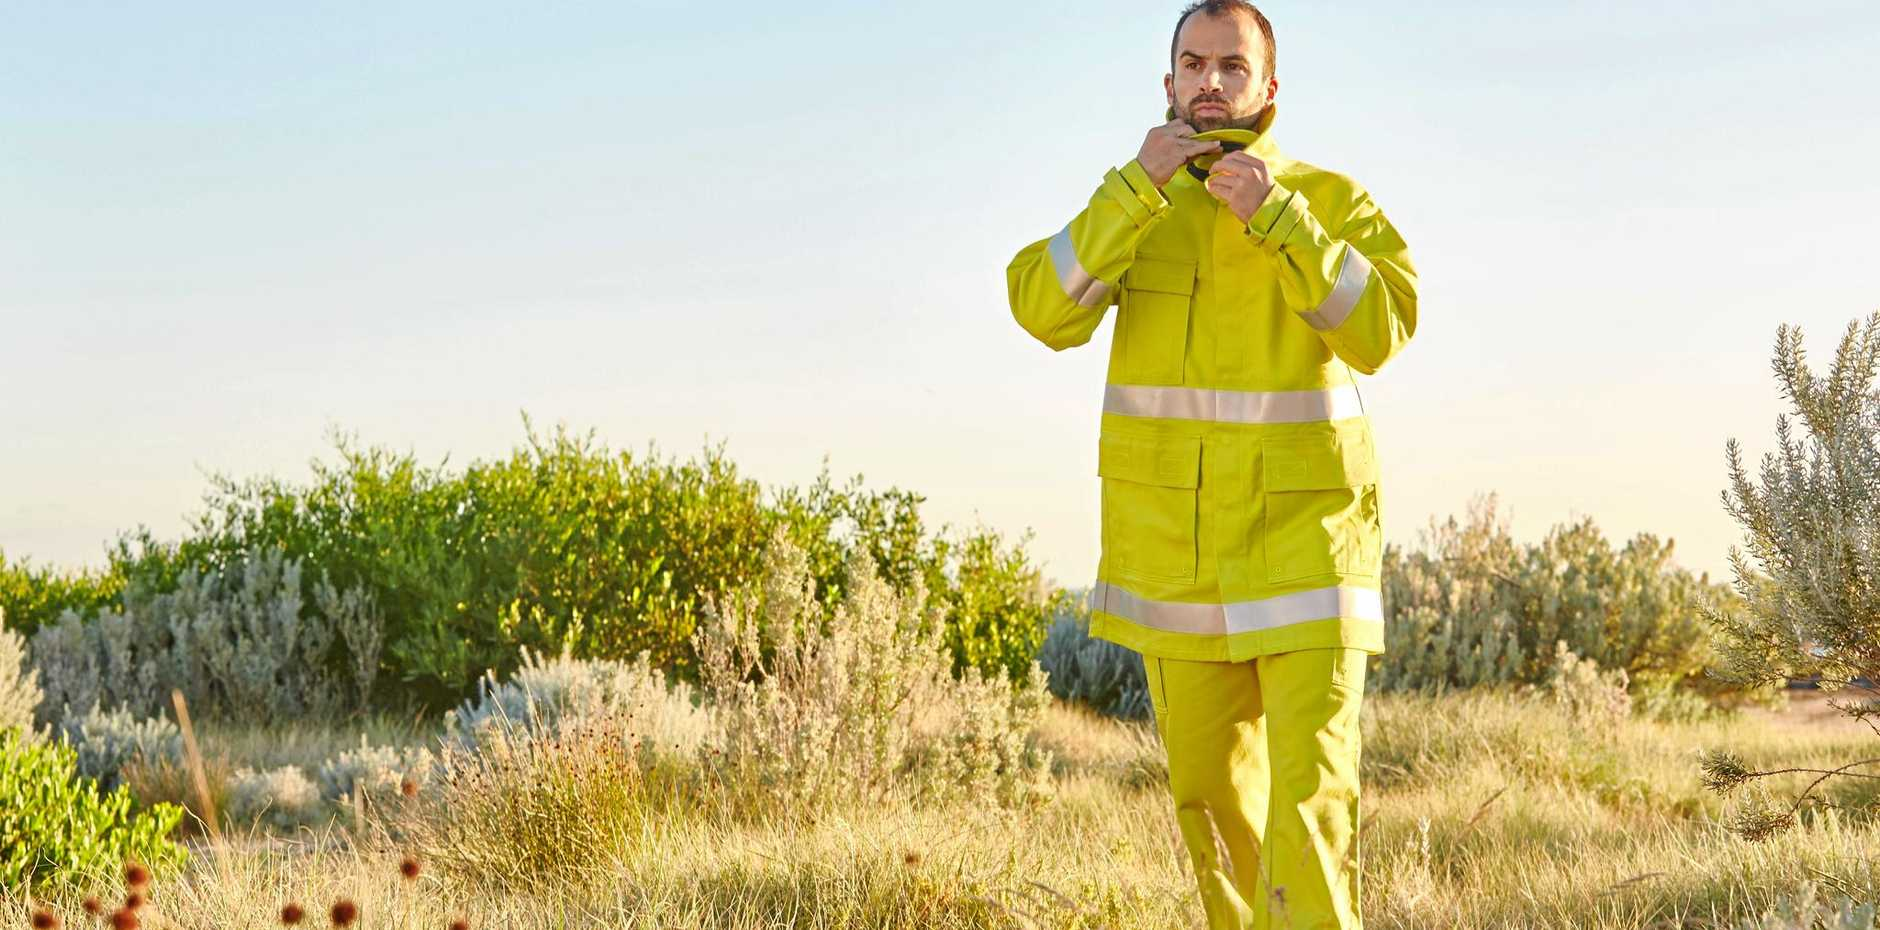 David Hack models the newly designed fire protection suits that are available for farmers across Australia to buy.